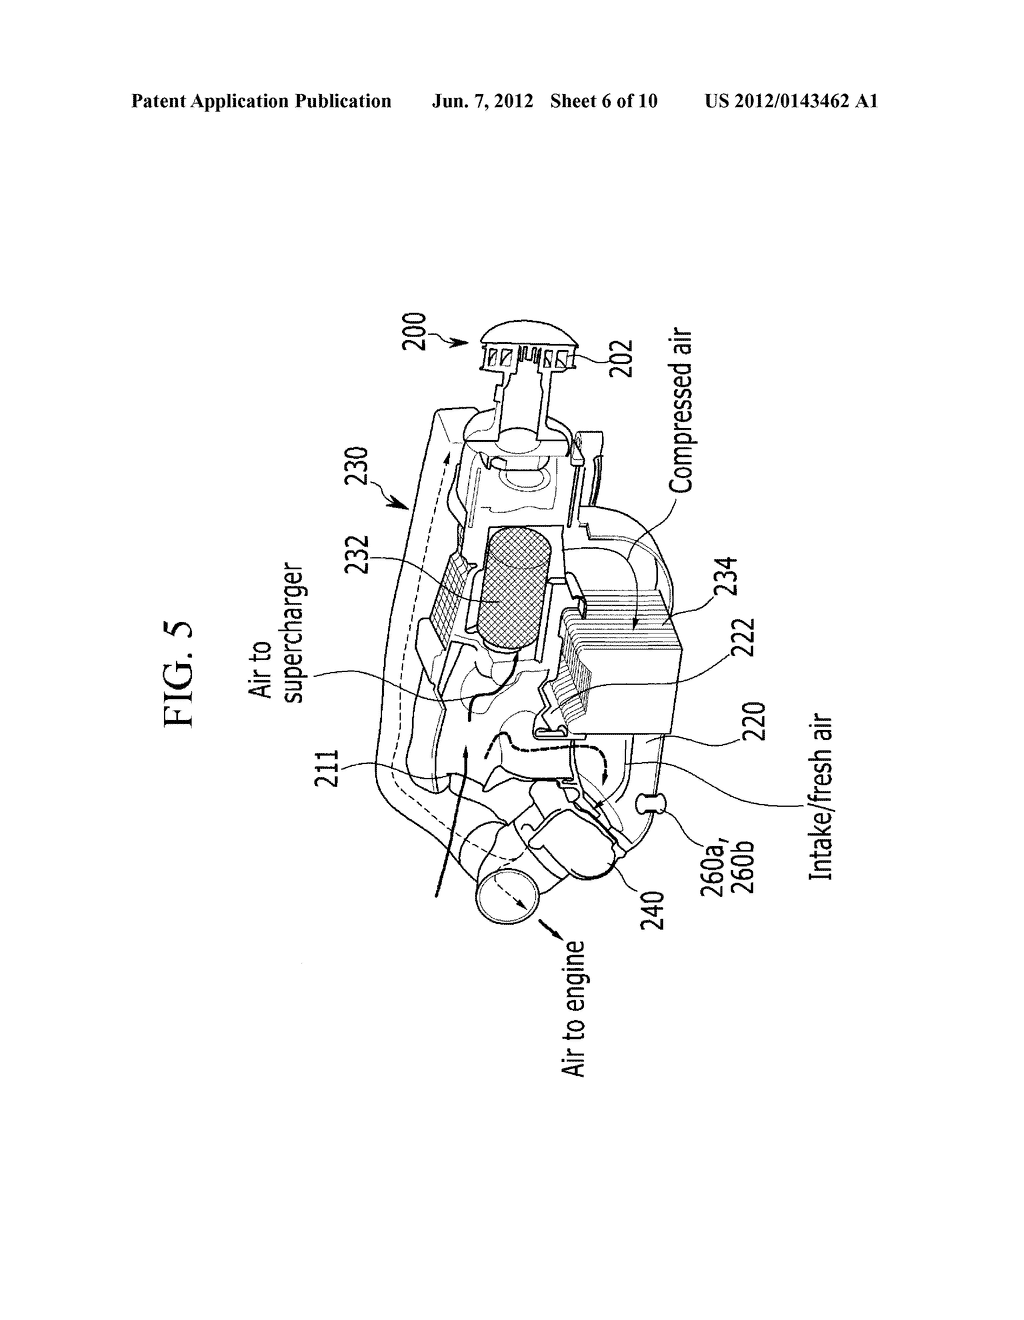 Engine Having Supercharged Intake System With Cda Valve Supercharger Diagram Arrangement And Methods Related Thereto Schematic Image 07